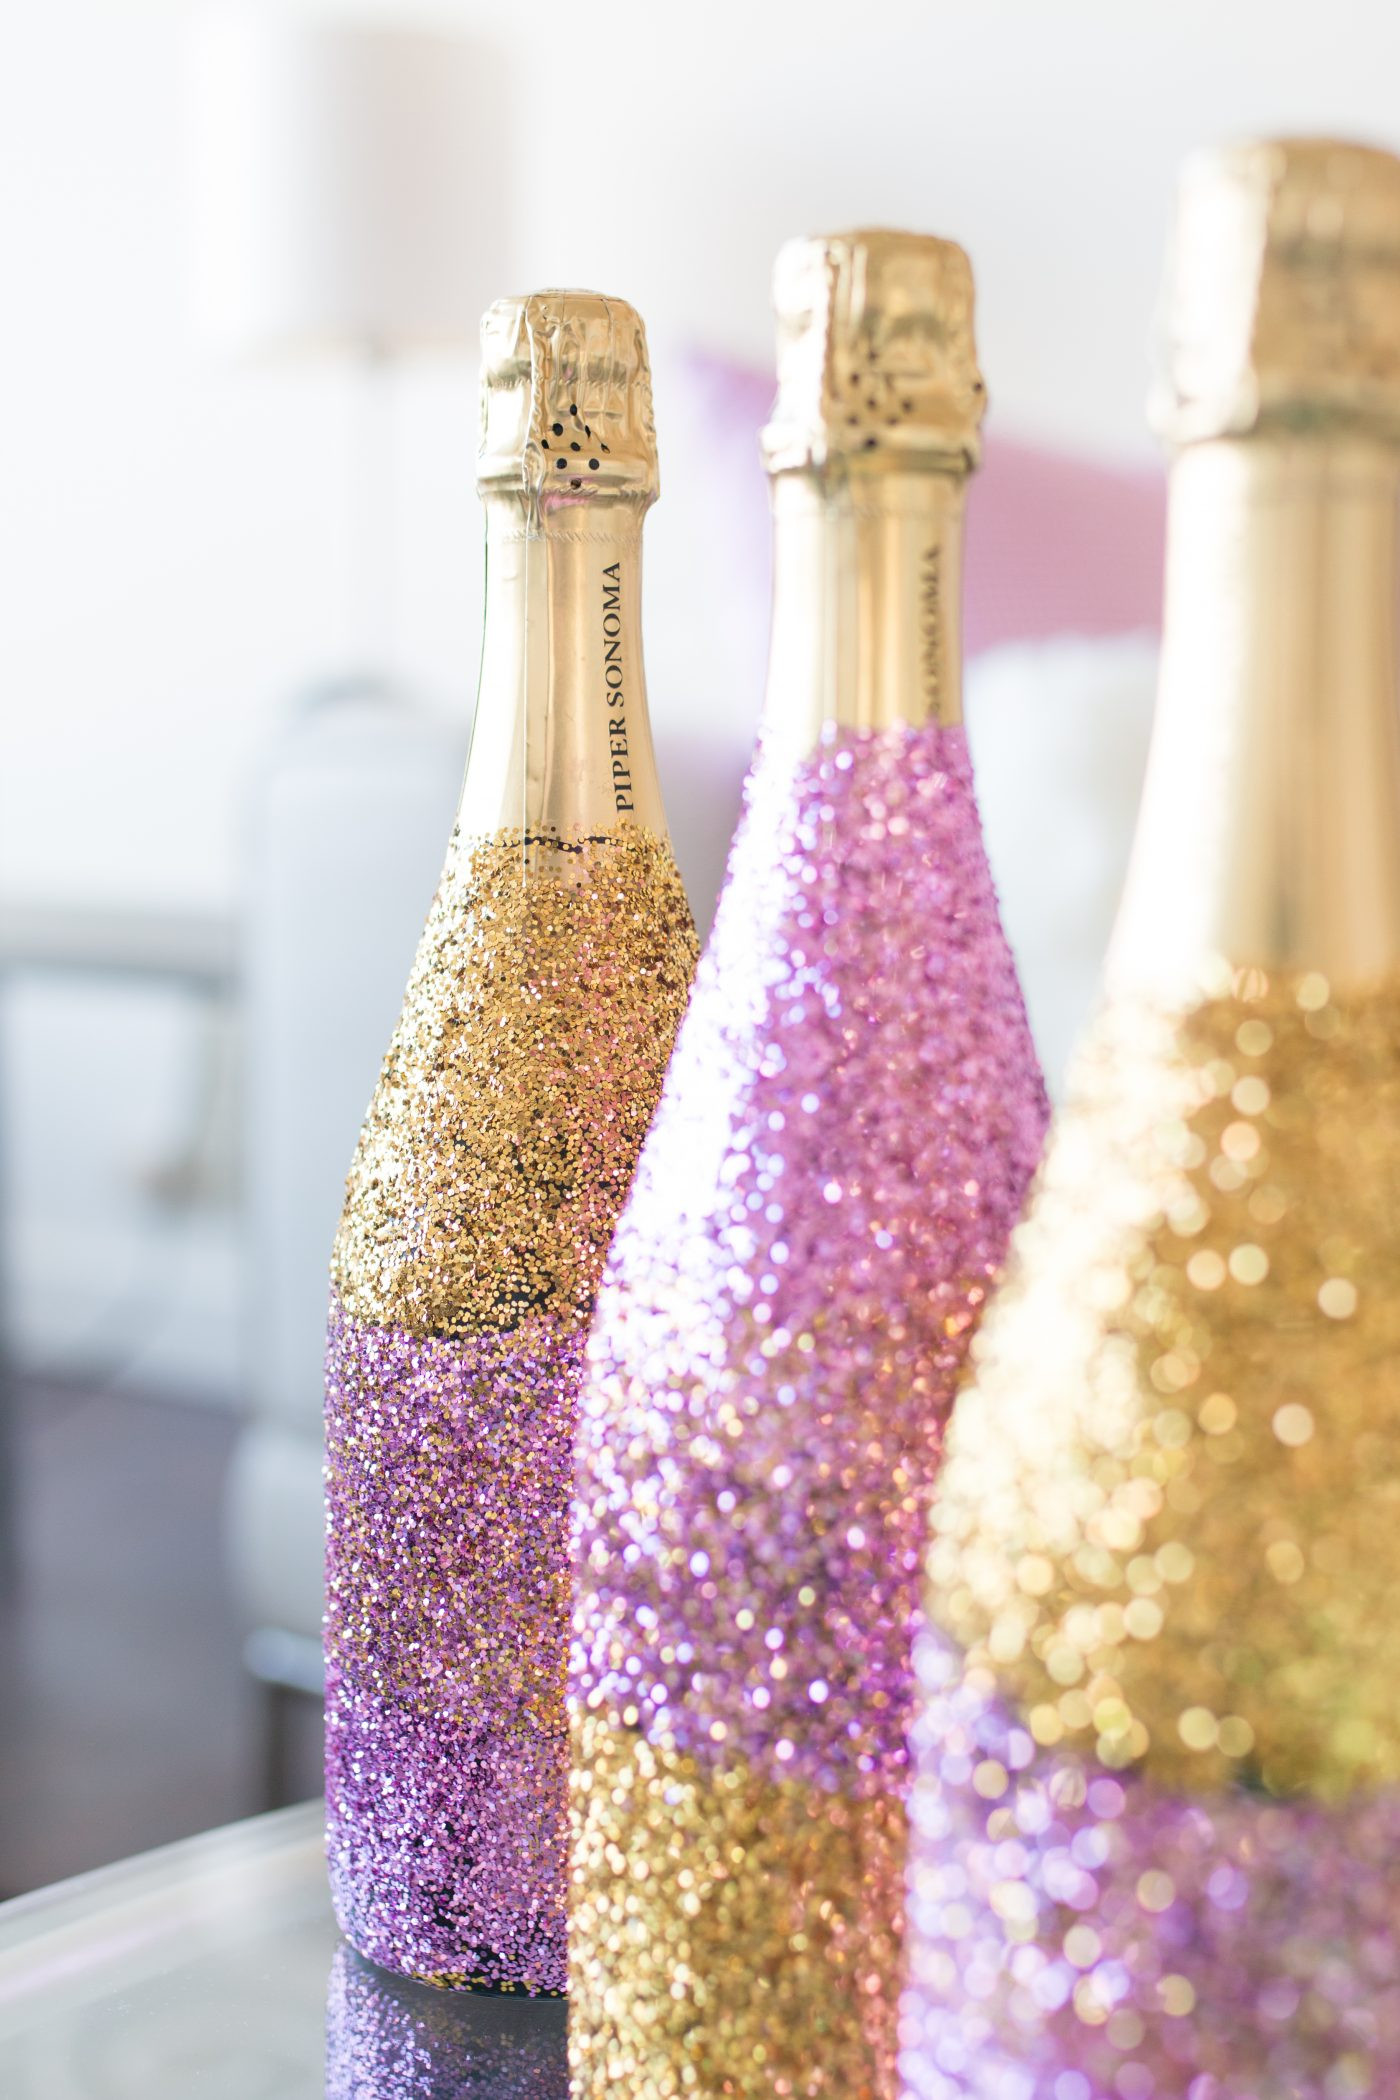 Best ideas about Glitter Wine Bottles DIY . Save or Pin DIY Glitter Ombré Champagne Bottle Now.